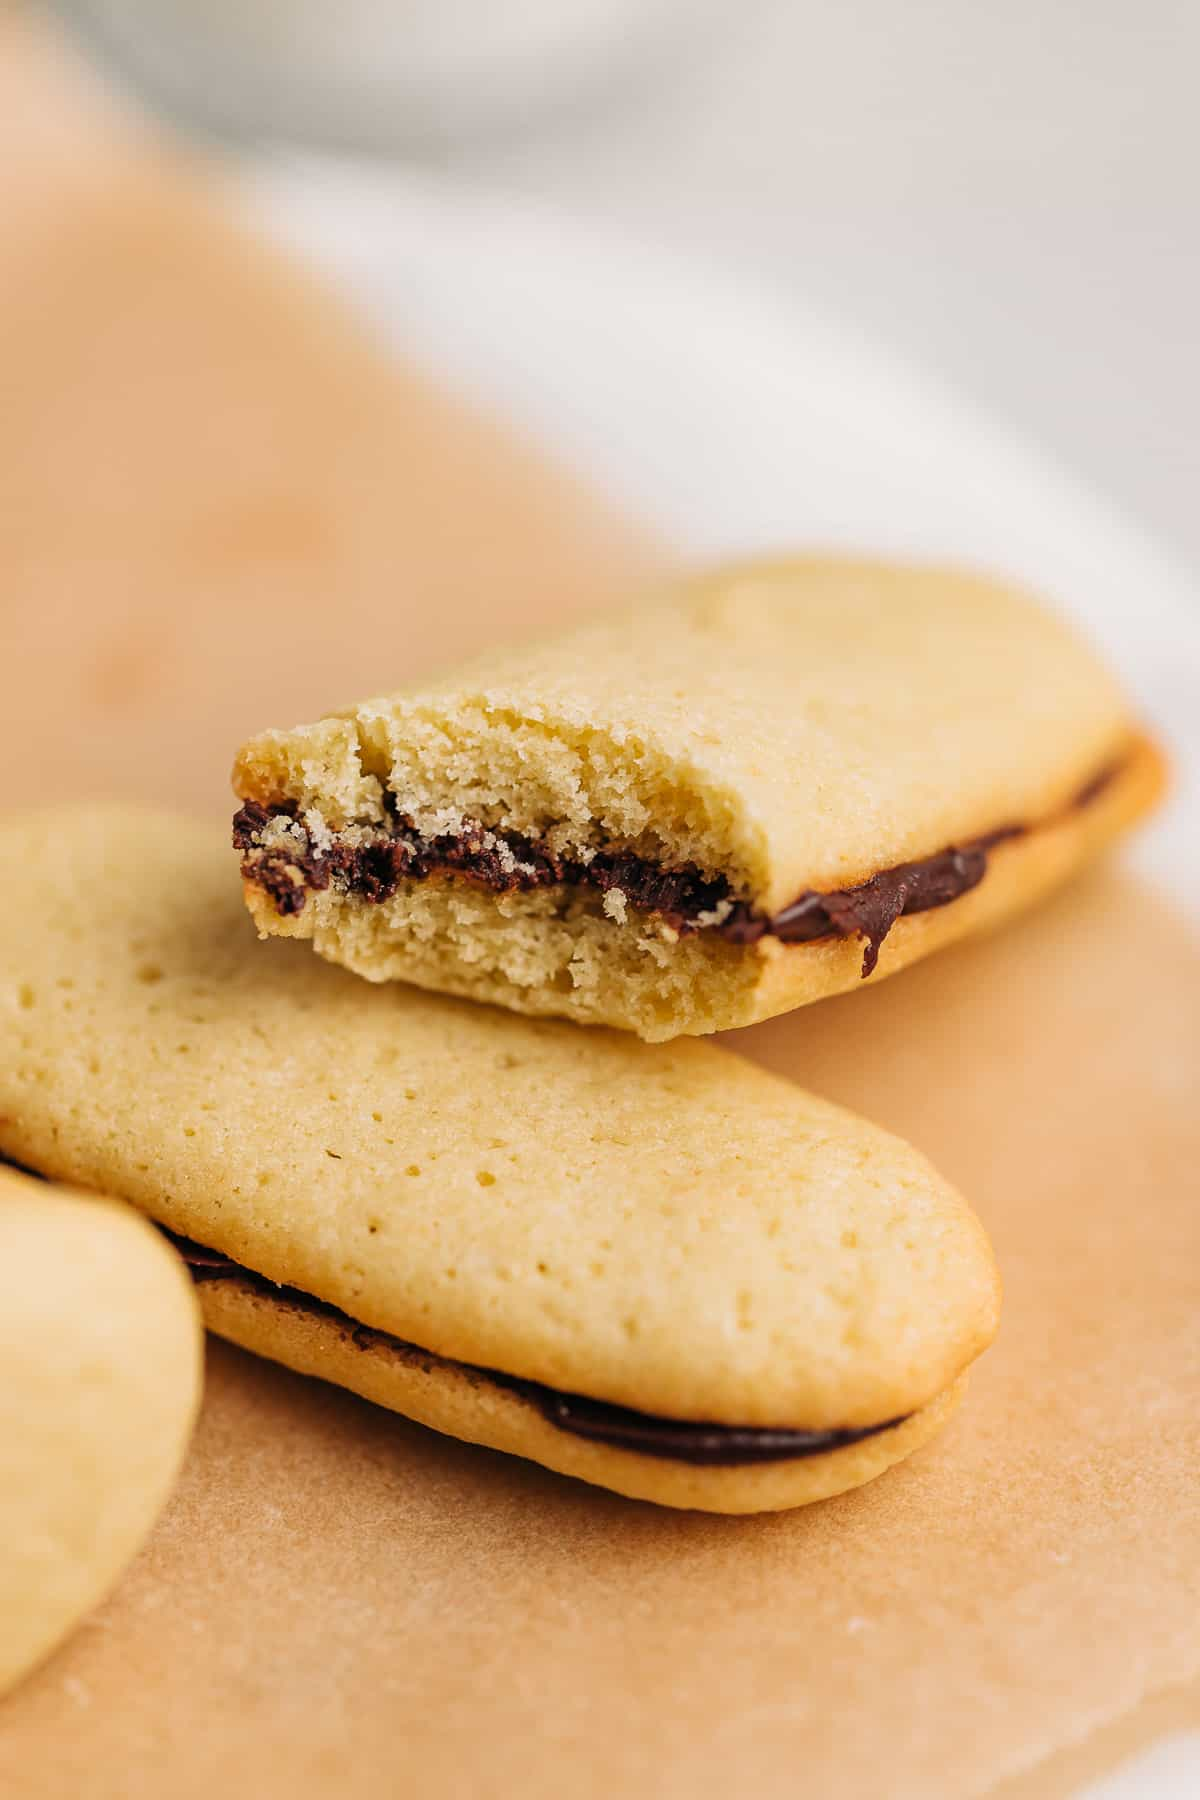 Bite shot of a Milano cookie on brown parchment paper.